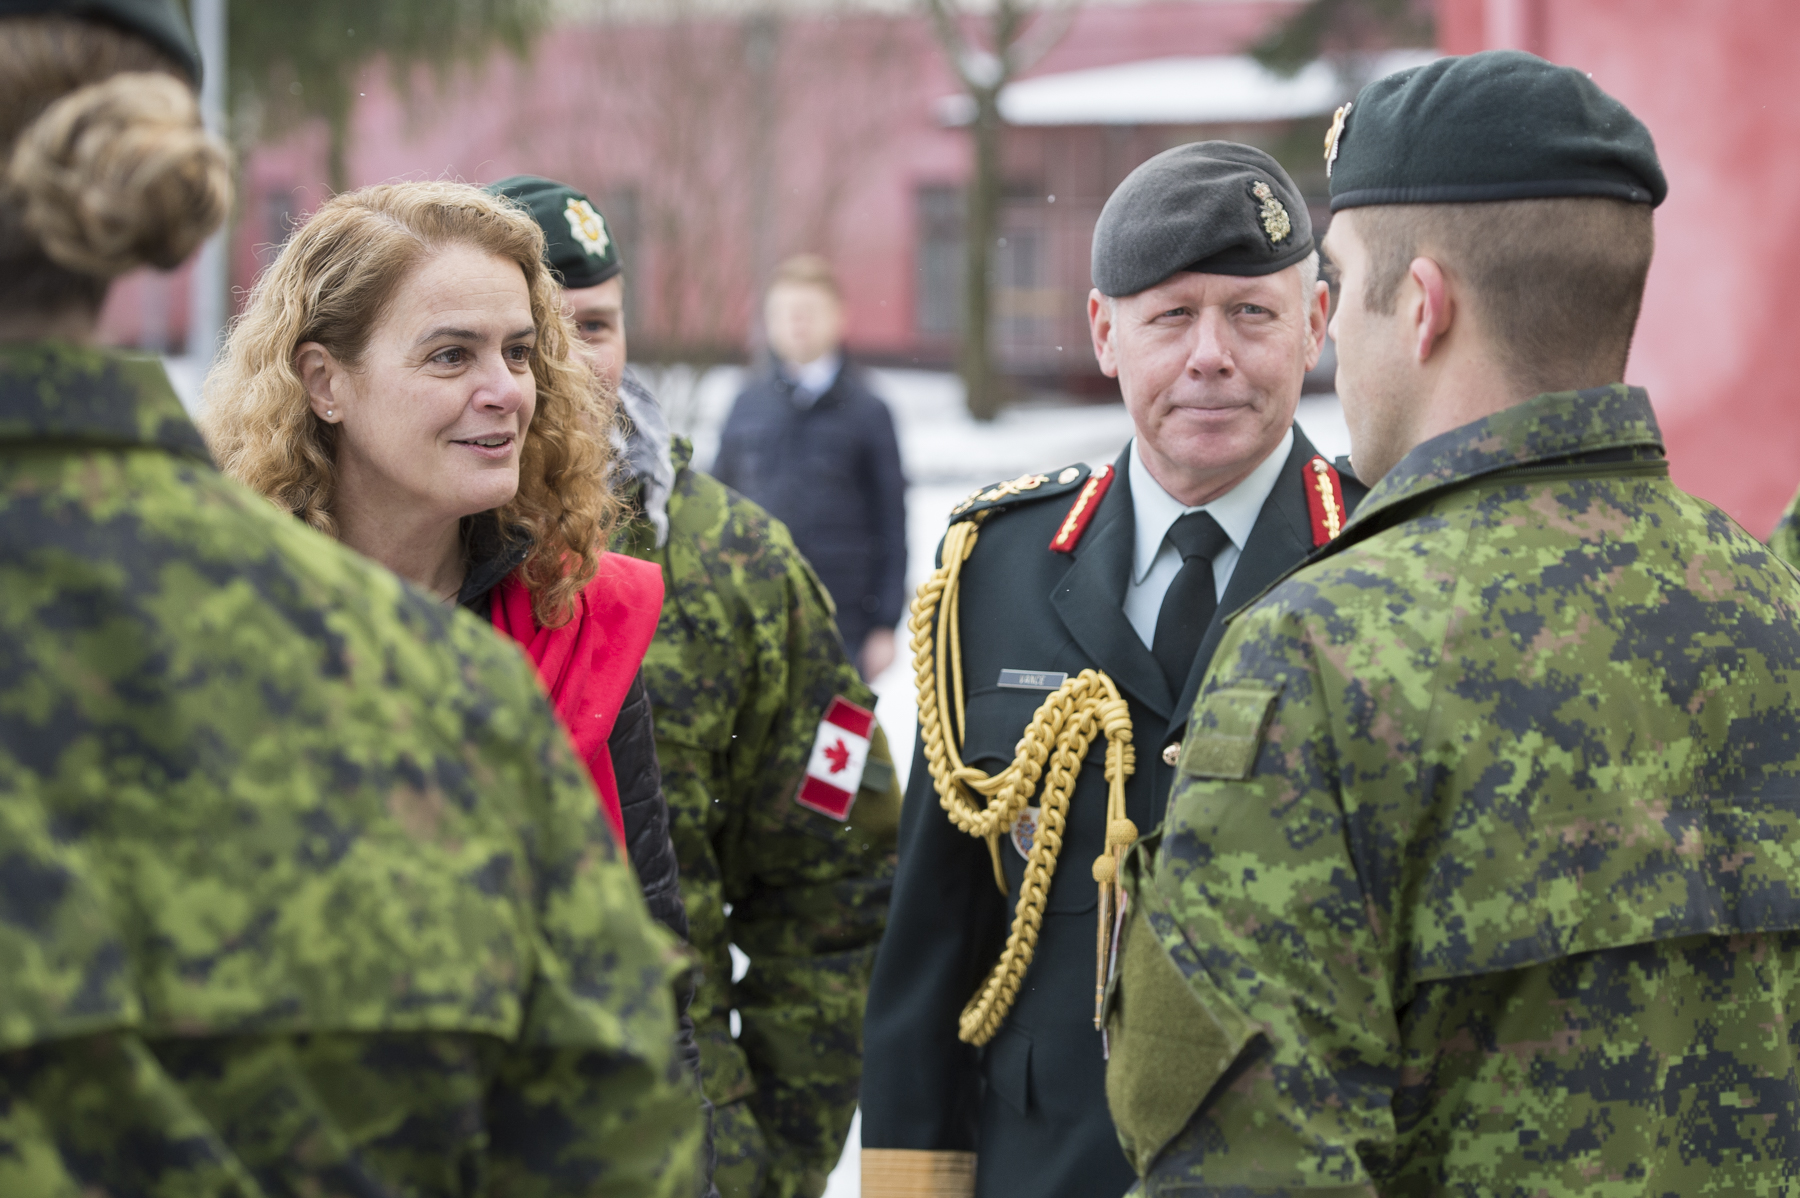 Afterwards, Her Excellency and General Jonathan Vance, Chief of the Defence Staff, met with members of the Canadian and Ukrainian Armed Forces at the Military Law and Order Service Academy.